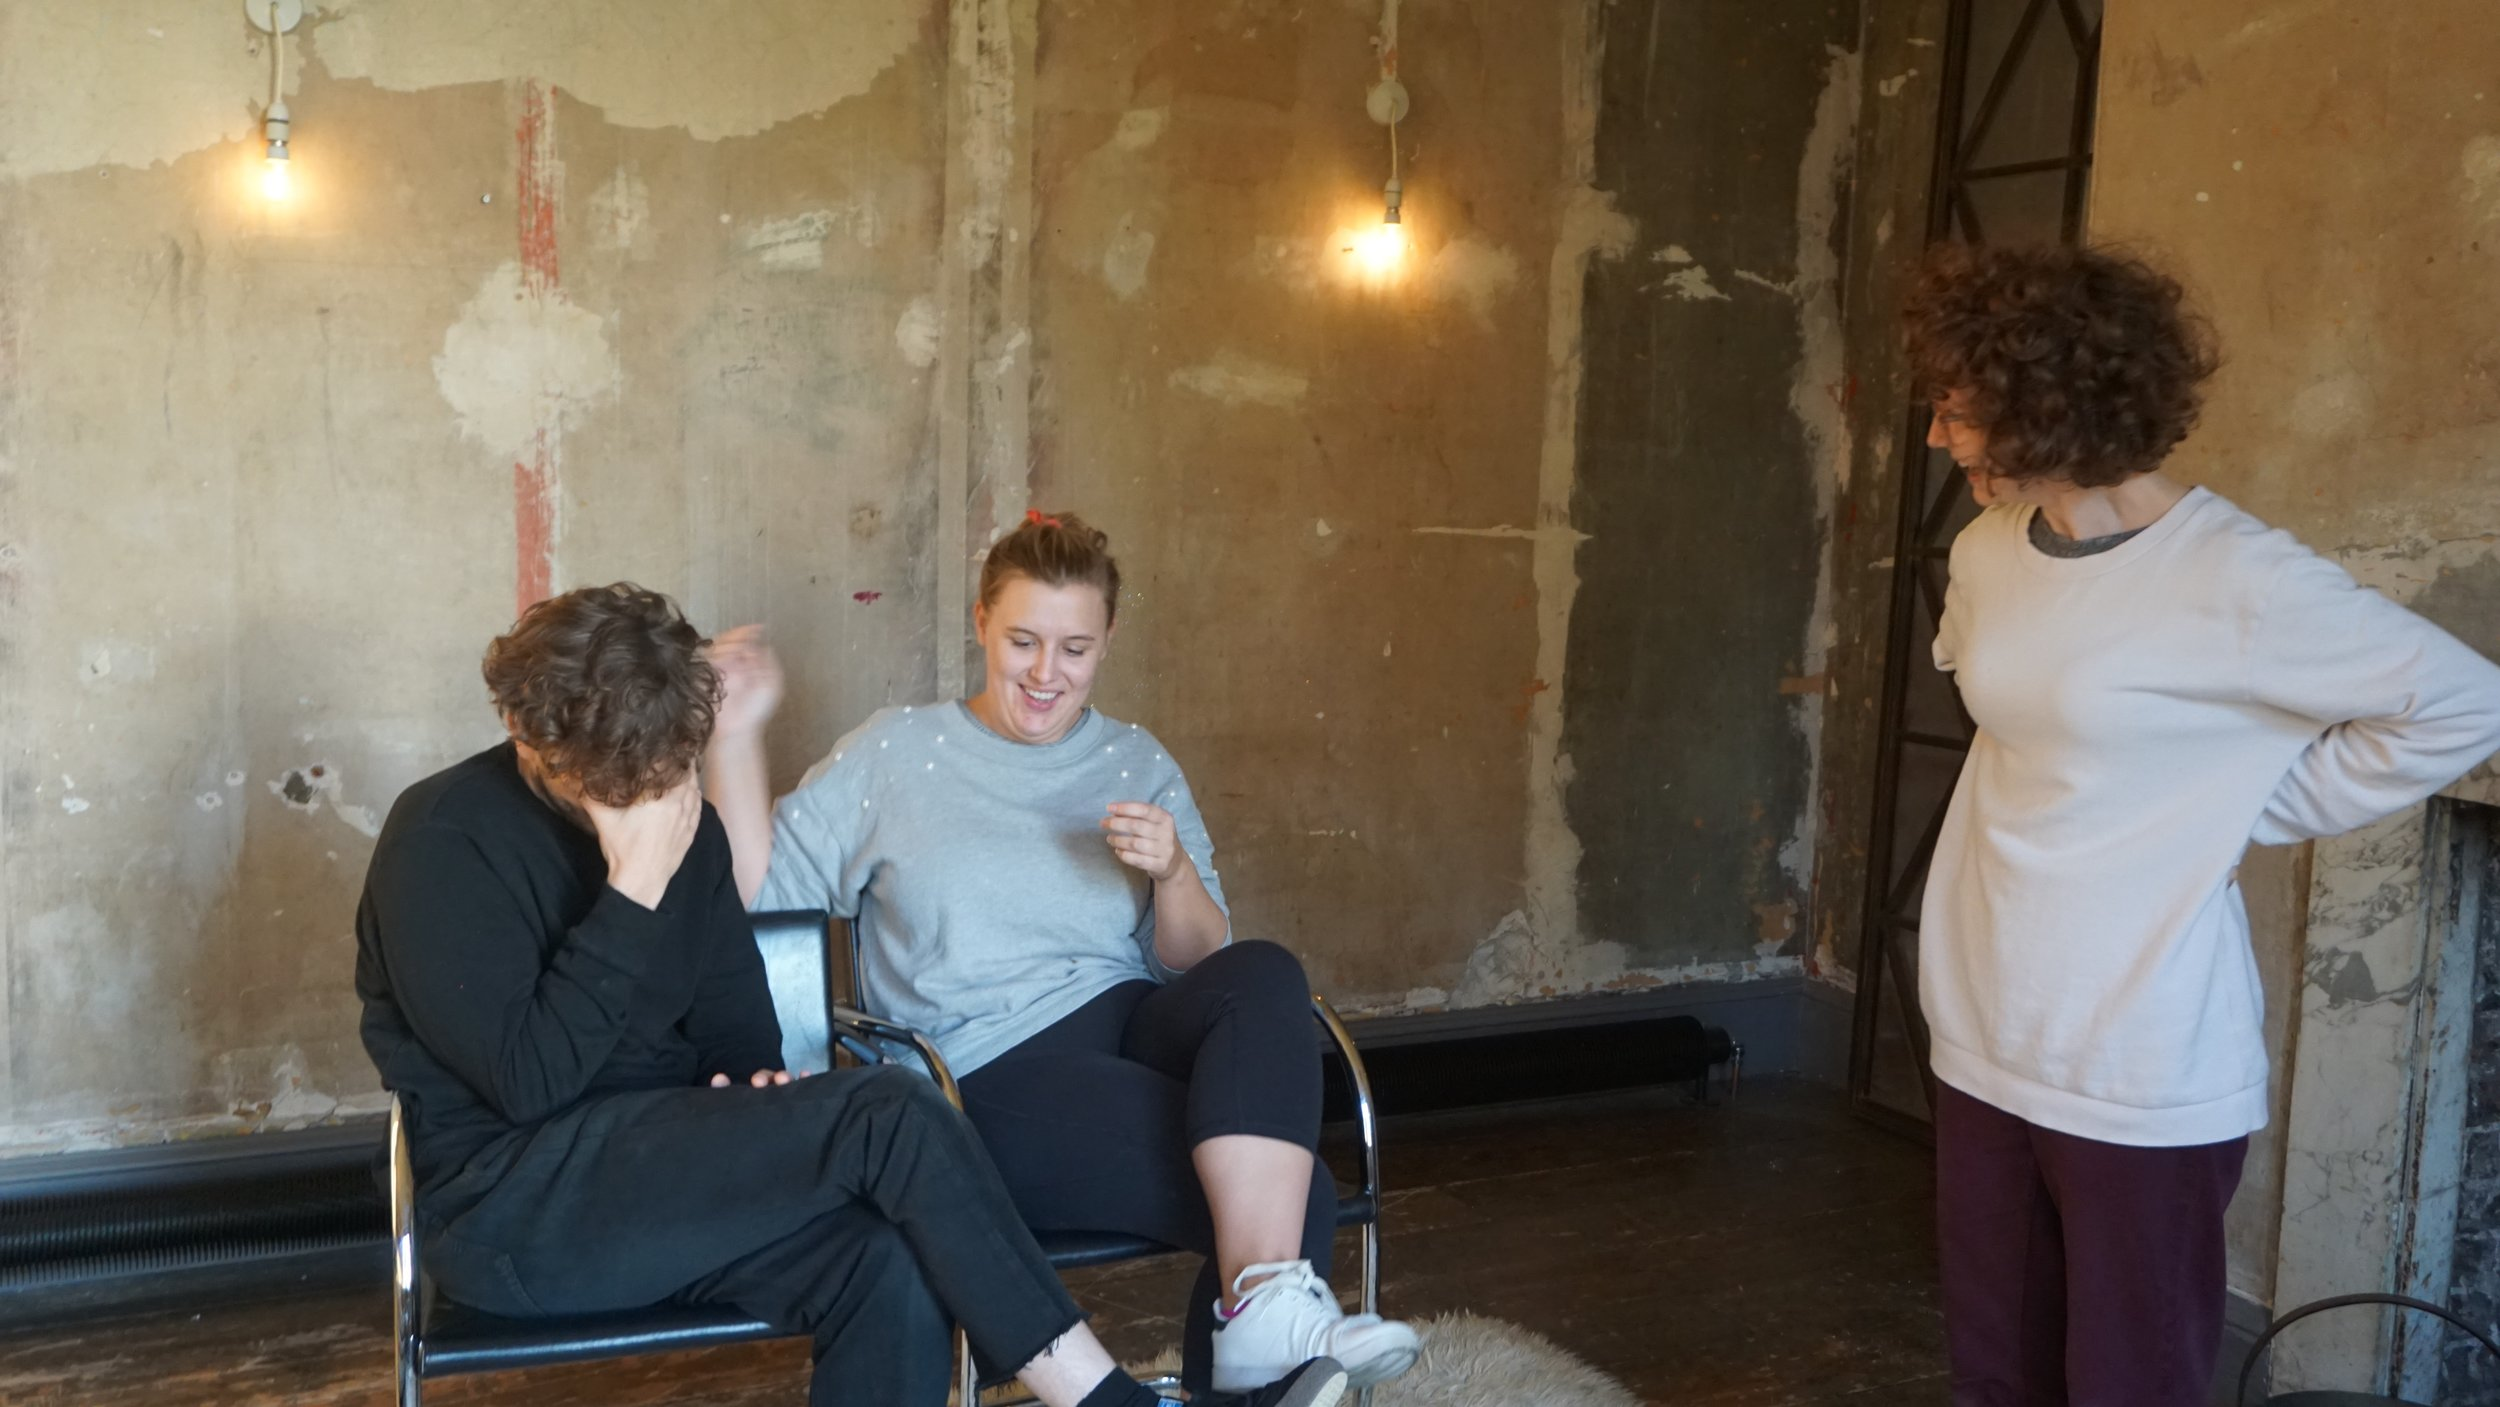 Rehearsal descending into CHAOS. Left to right: Hugh Stubbins, Emilia Stawicki, Michal Horowicz